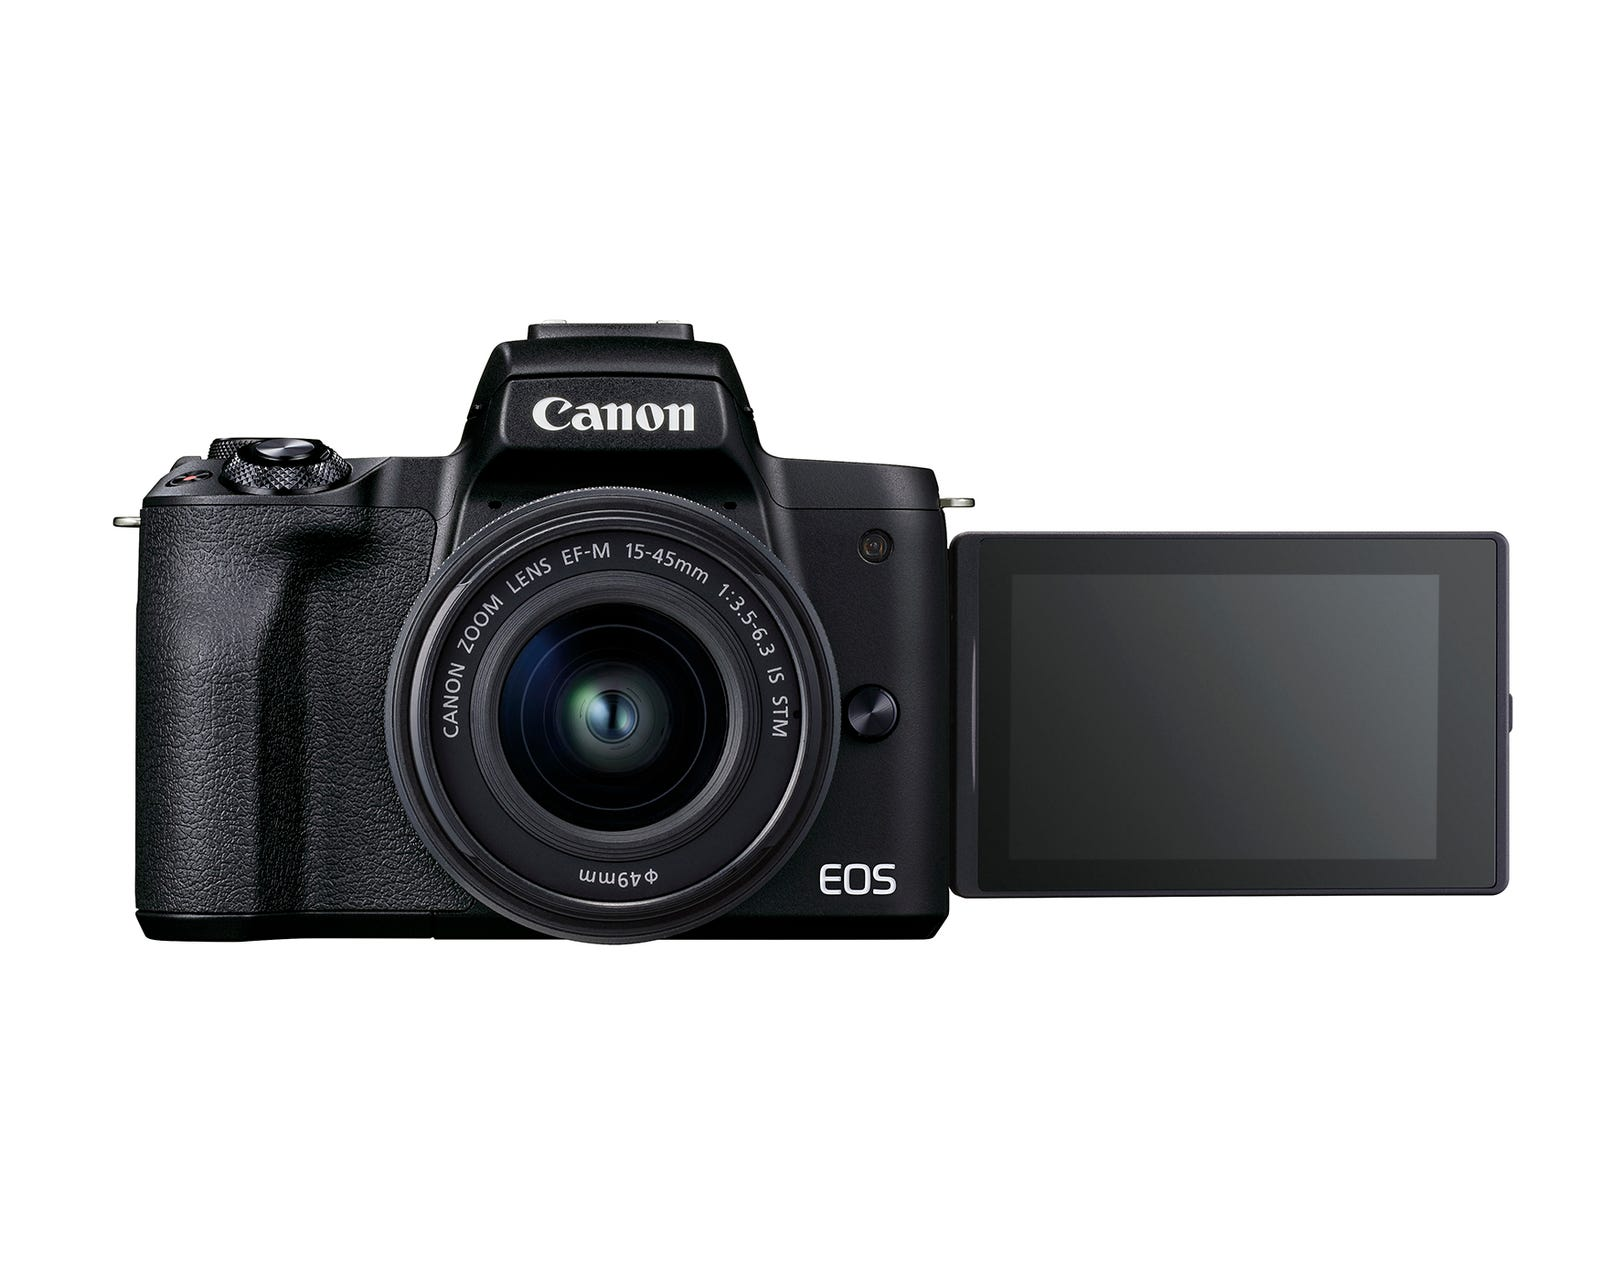 Click through for more official images of the EOS M50 Mark II.